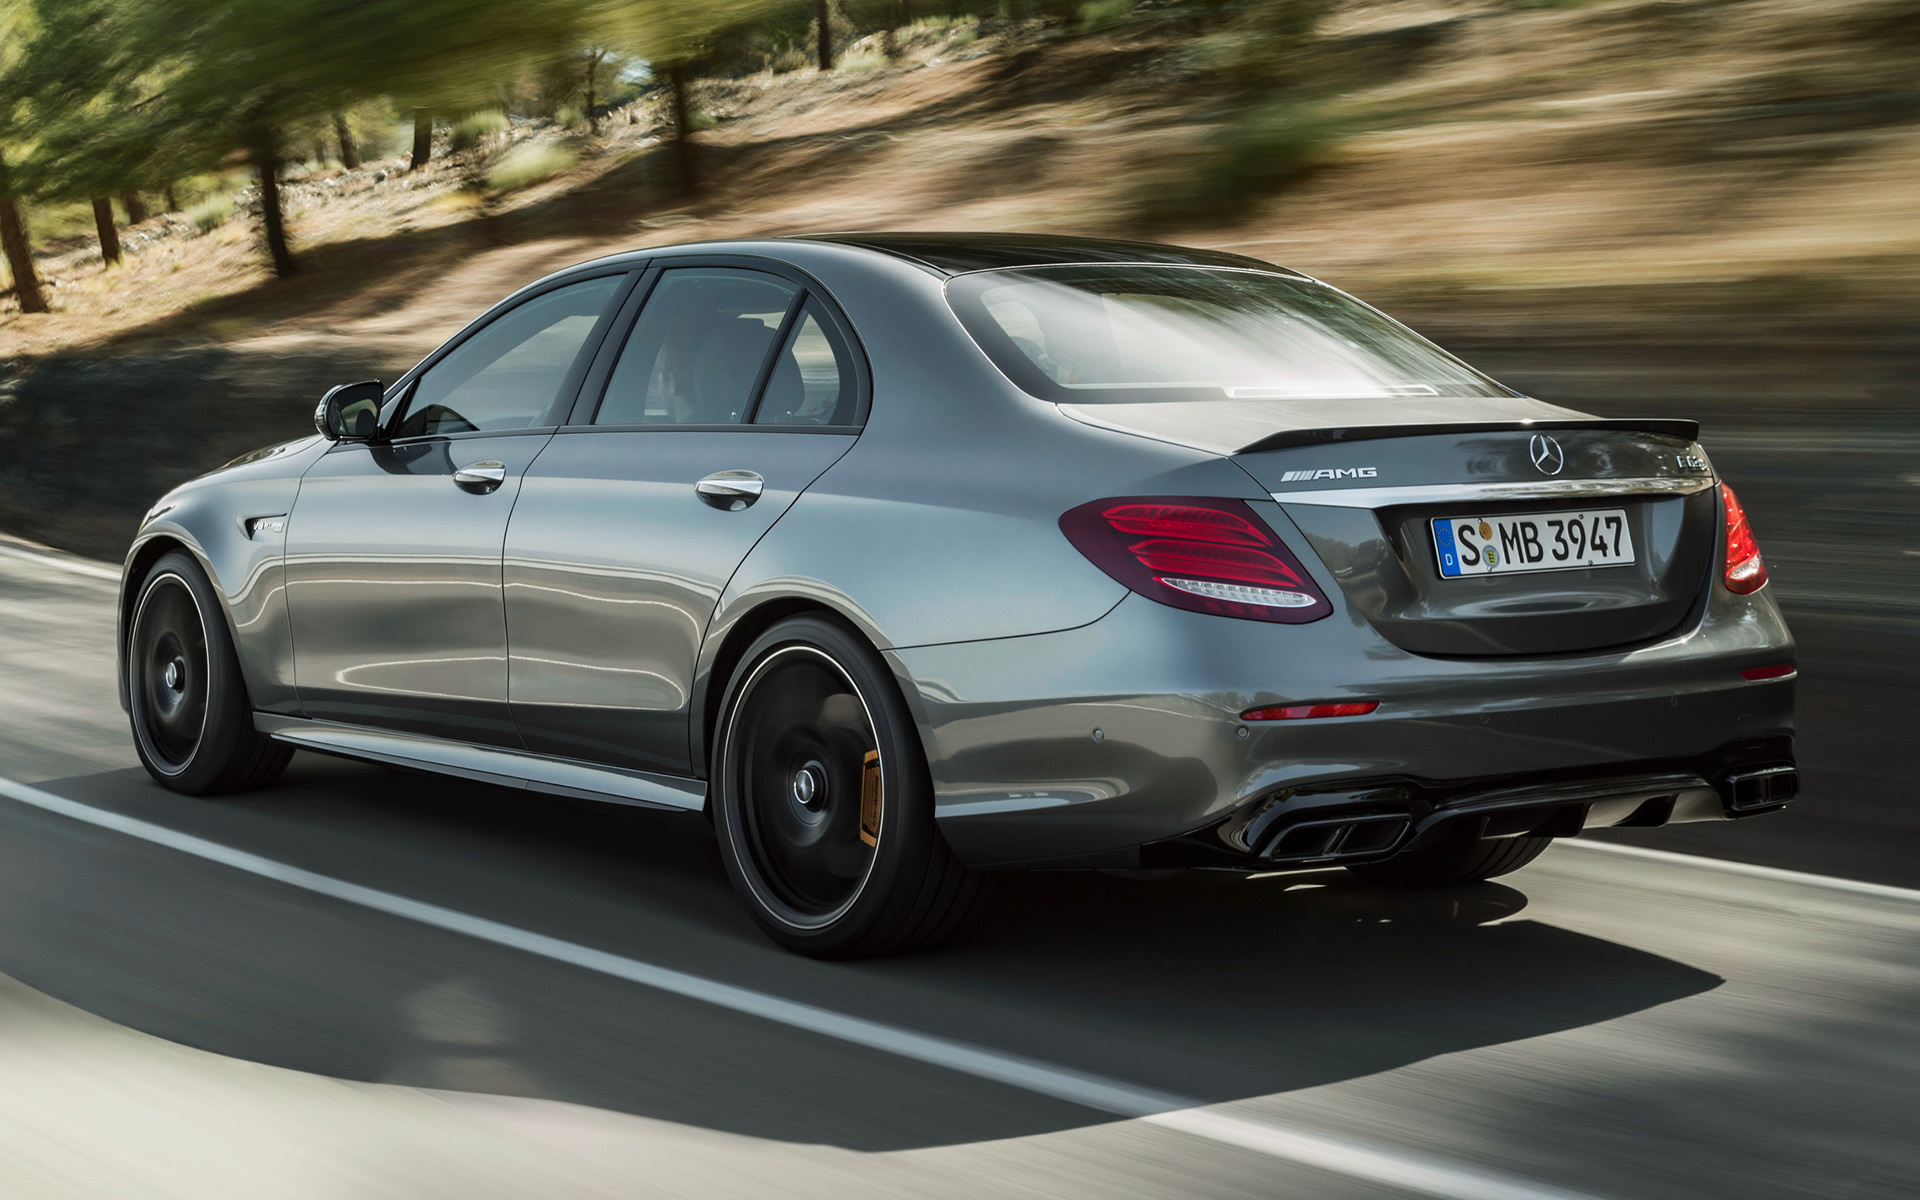 2017 mercedes amg e 63 s wallpapers and hd images car. Black Bedroom Furniture Sets. Home Design Ideas